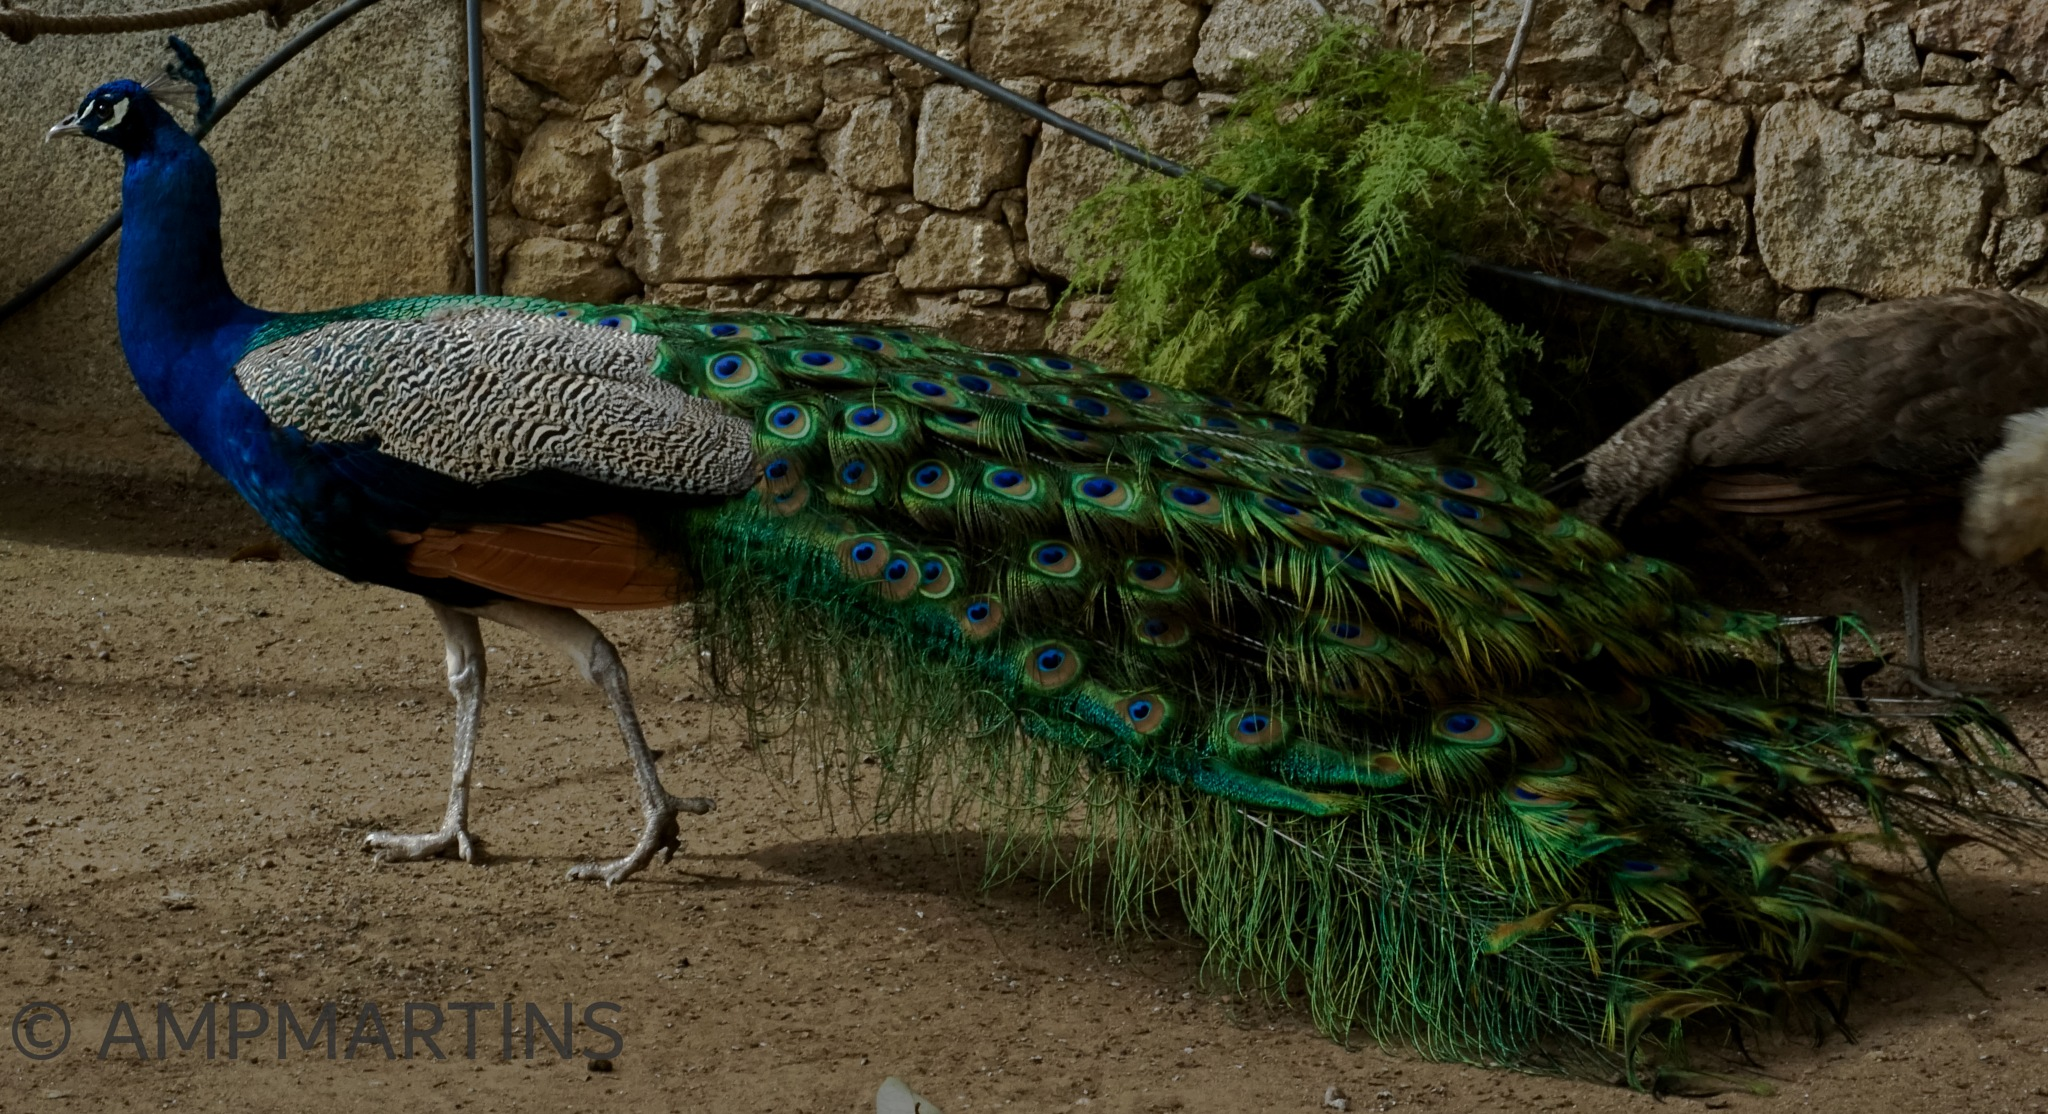 Hello i'm Mr. peacock by AMPMARTINS